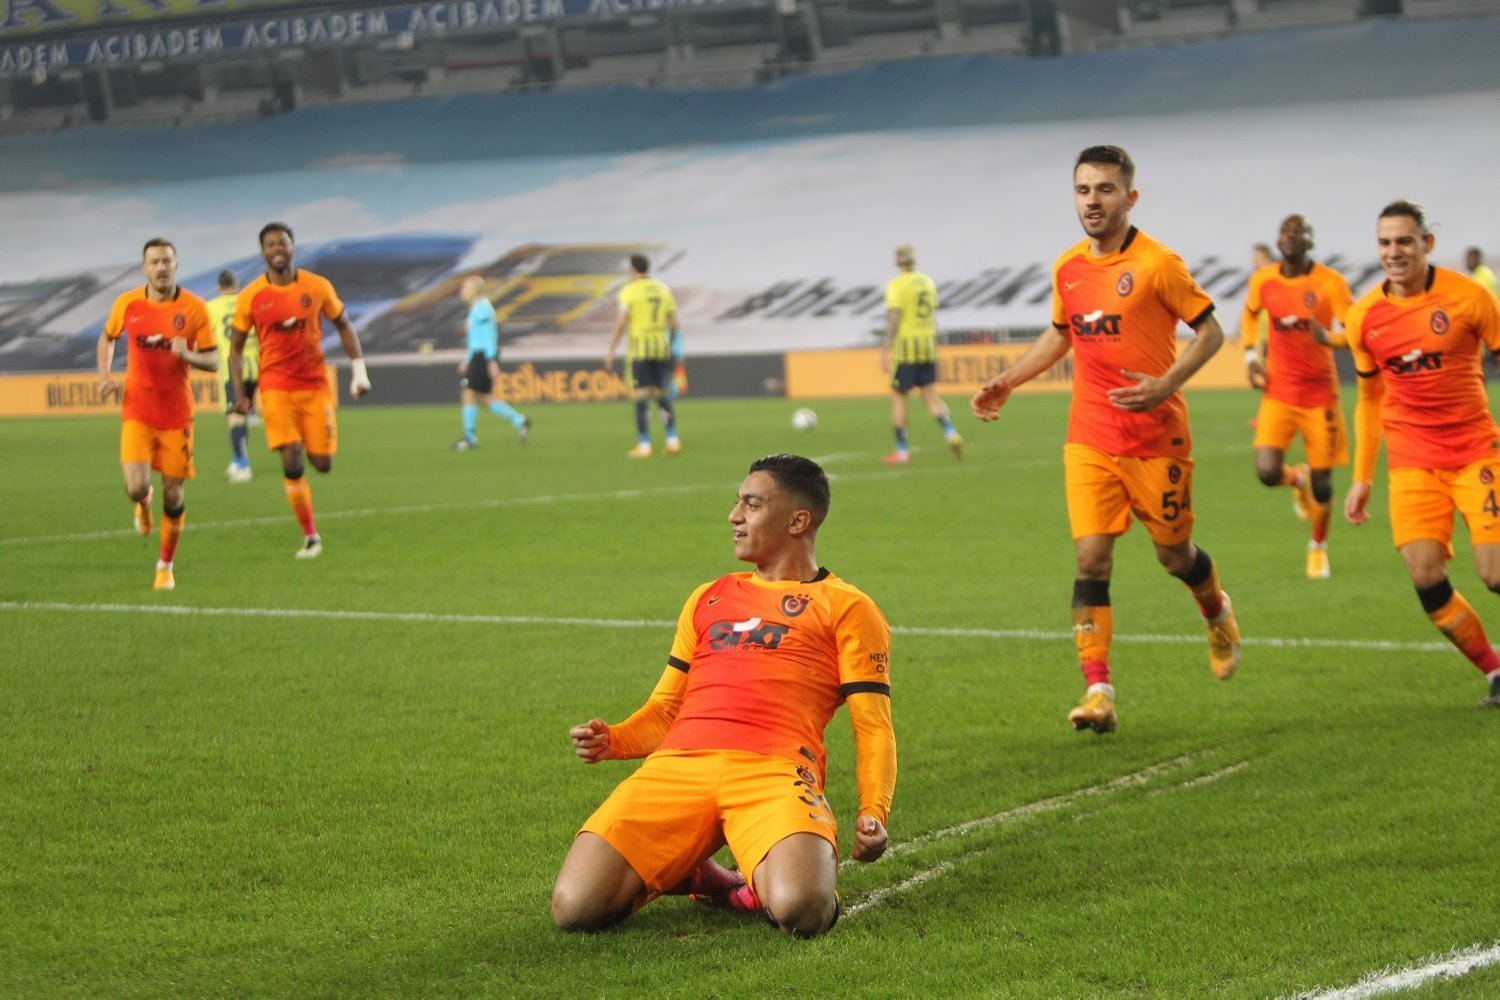 Galatasaray's Egyptian forward Mostafa Mohamed (C) celebrates scoring the winning goal against Fenerbahçe, Şükrü Saracoğlu Stadium, Istanbul, Feb. 6, 2021. (DHA Photo)